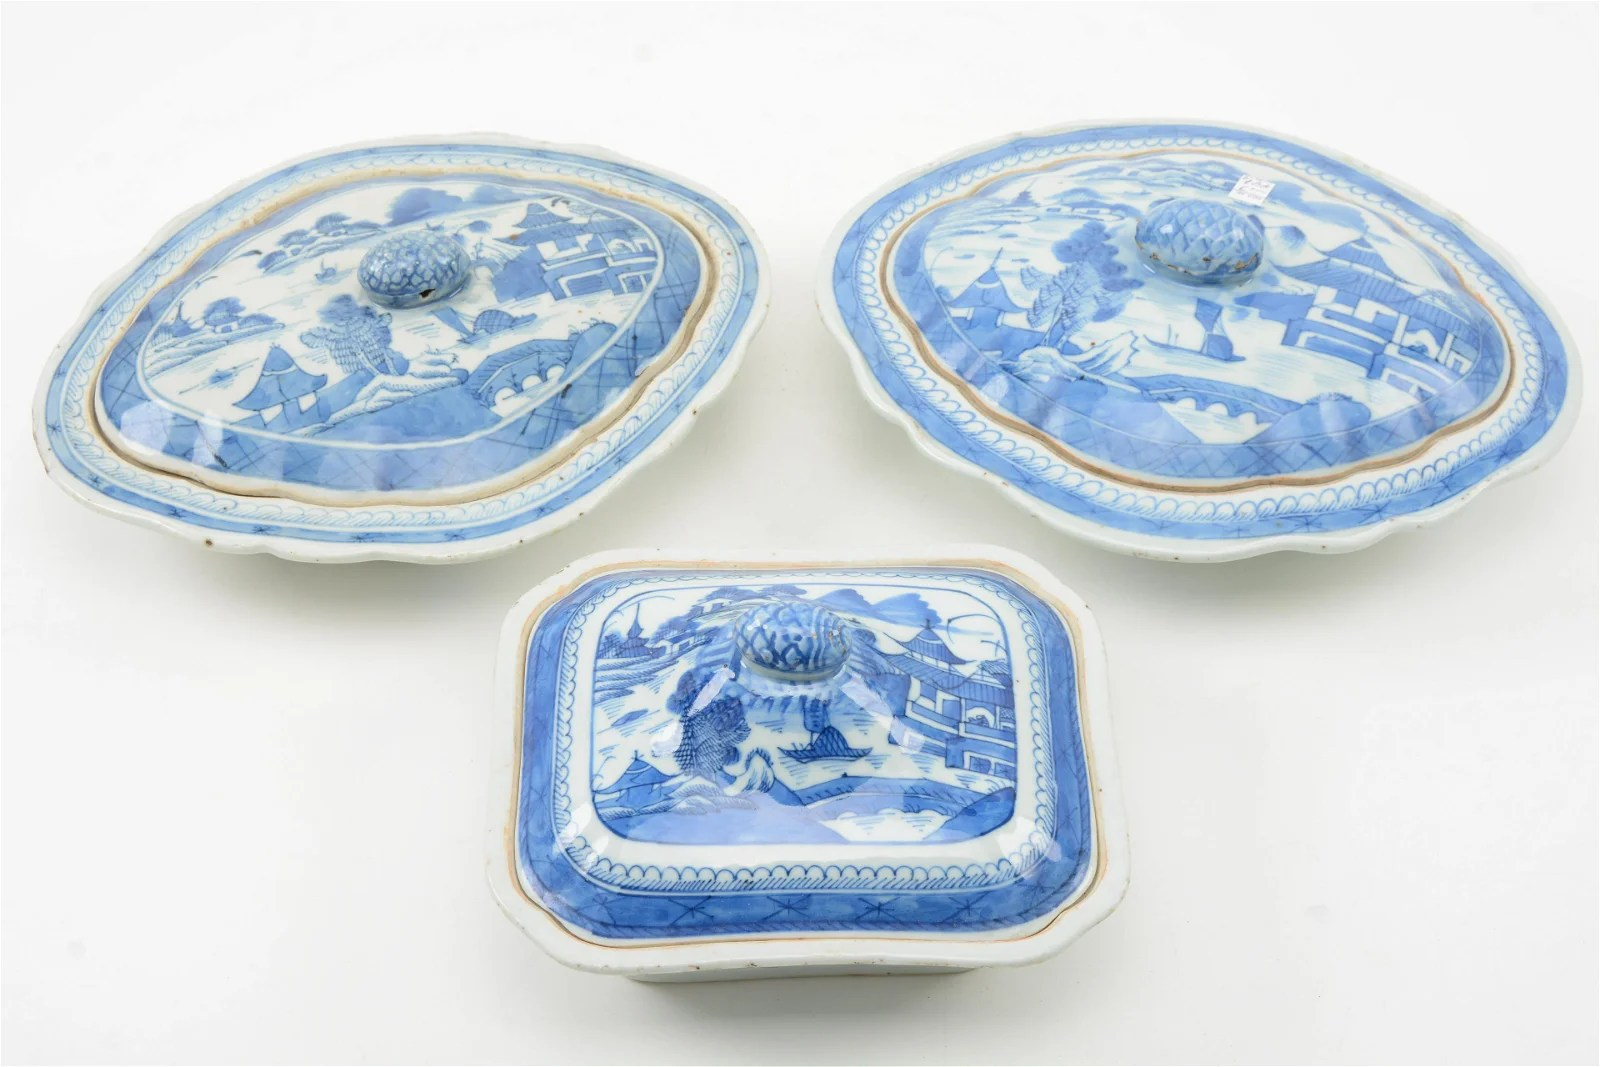 Chinese Export Canton Porcelain Vegetable Dishes